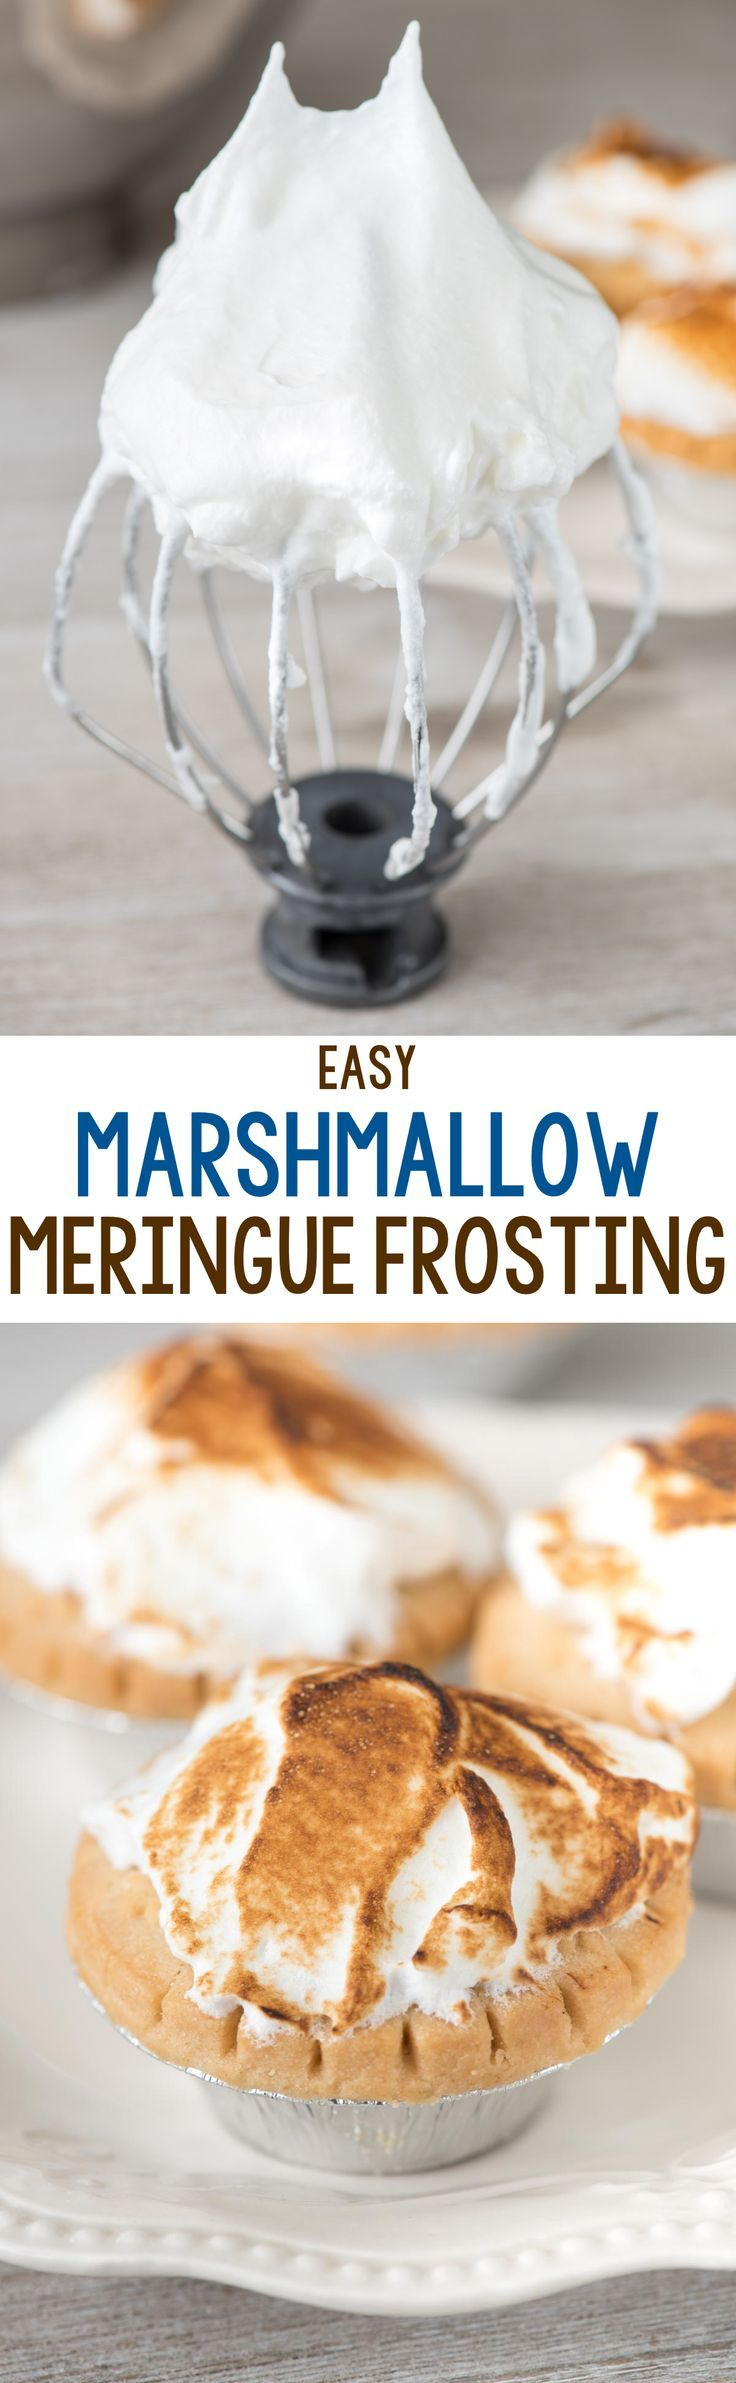 easy-Easy Marshmallow Meringue Frosting - this meringue tastes like a melted marshmallow and is the perfect way to dress up pies, cupcakes, and brownies!-meringue-frosting